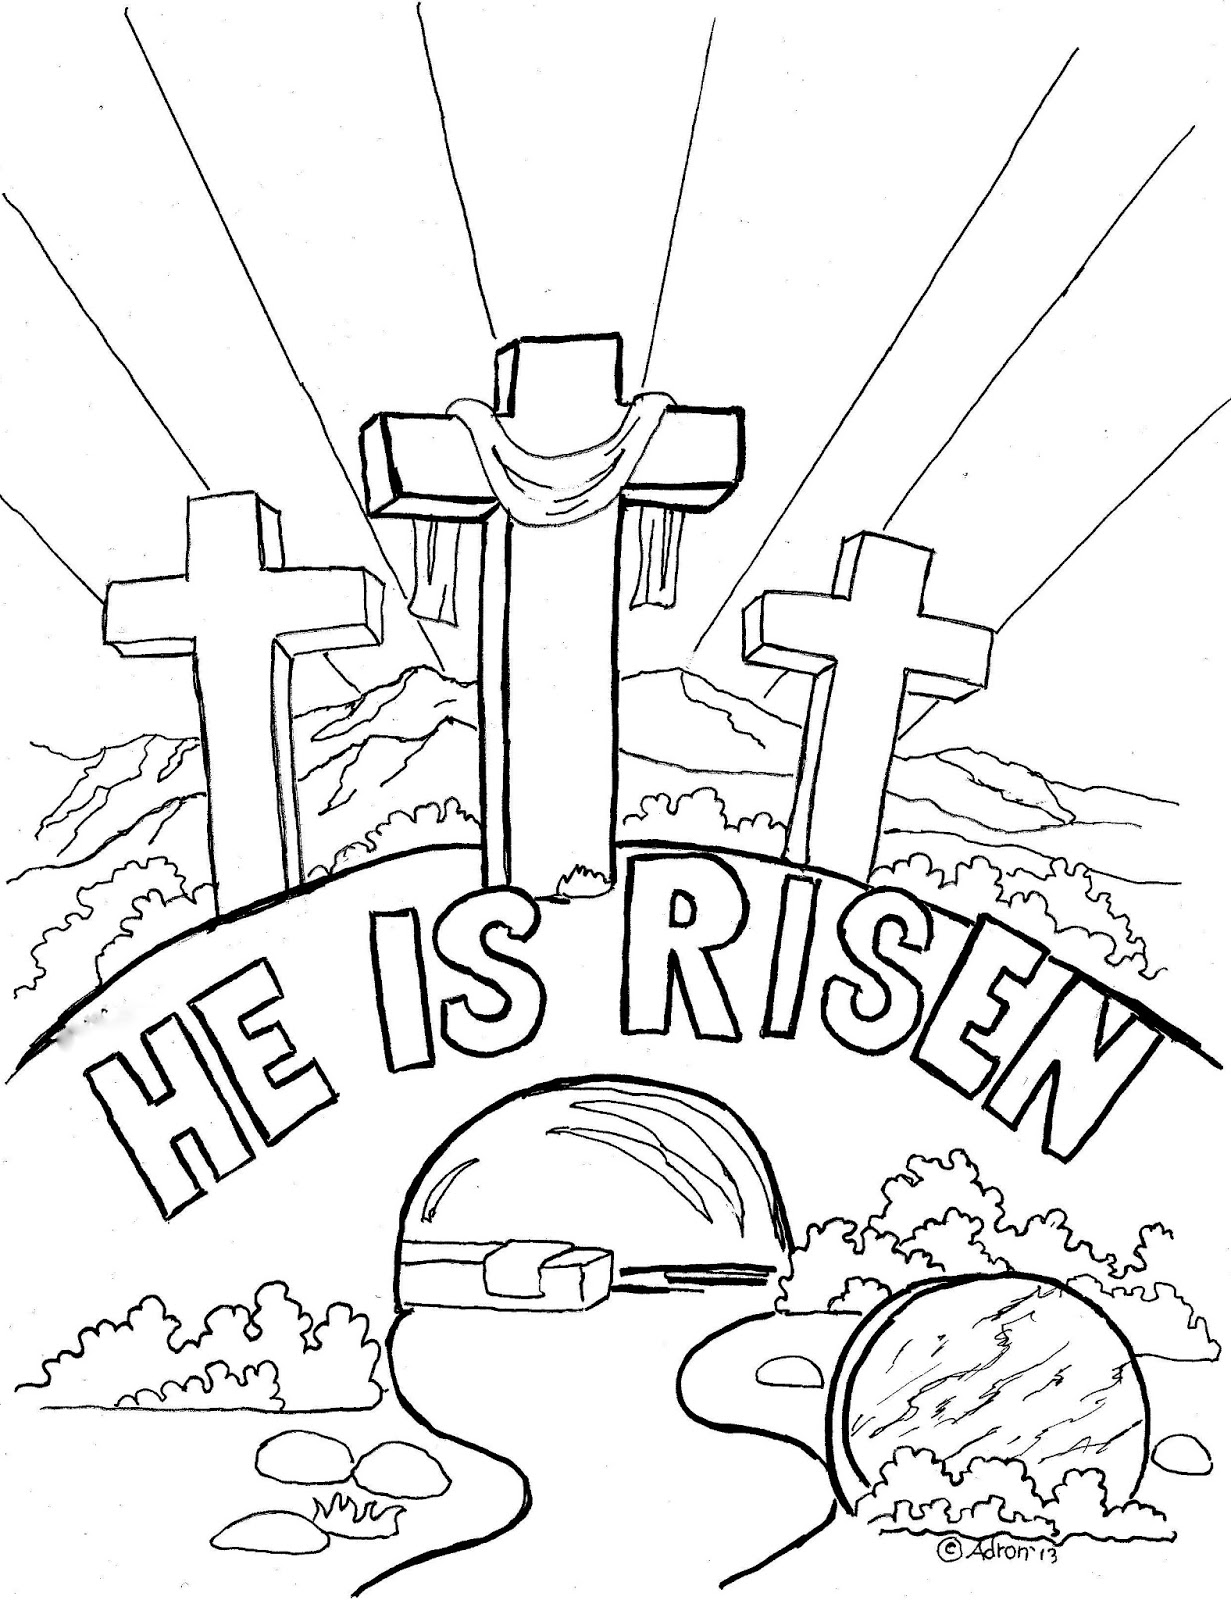 Religious Easter Coloring Pages - Best Coloring Pages For Kids | free printable religious coloring pages for easter